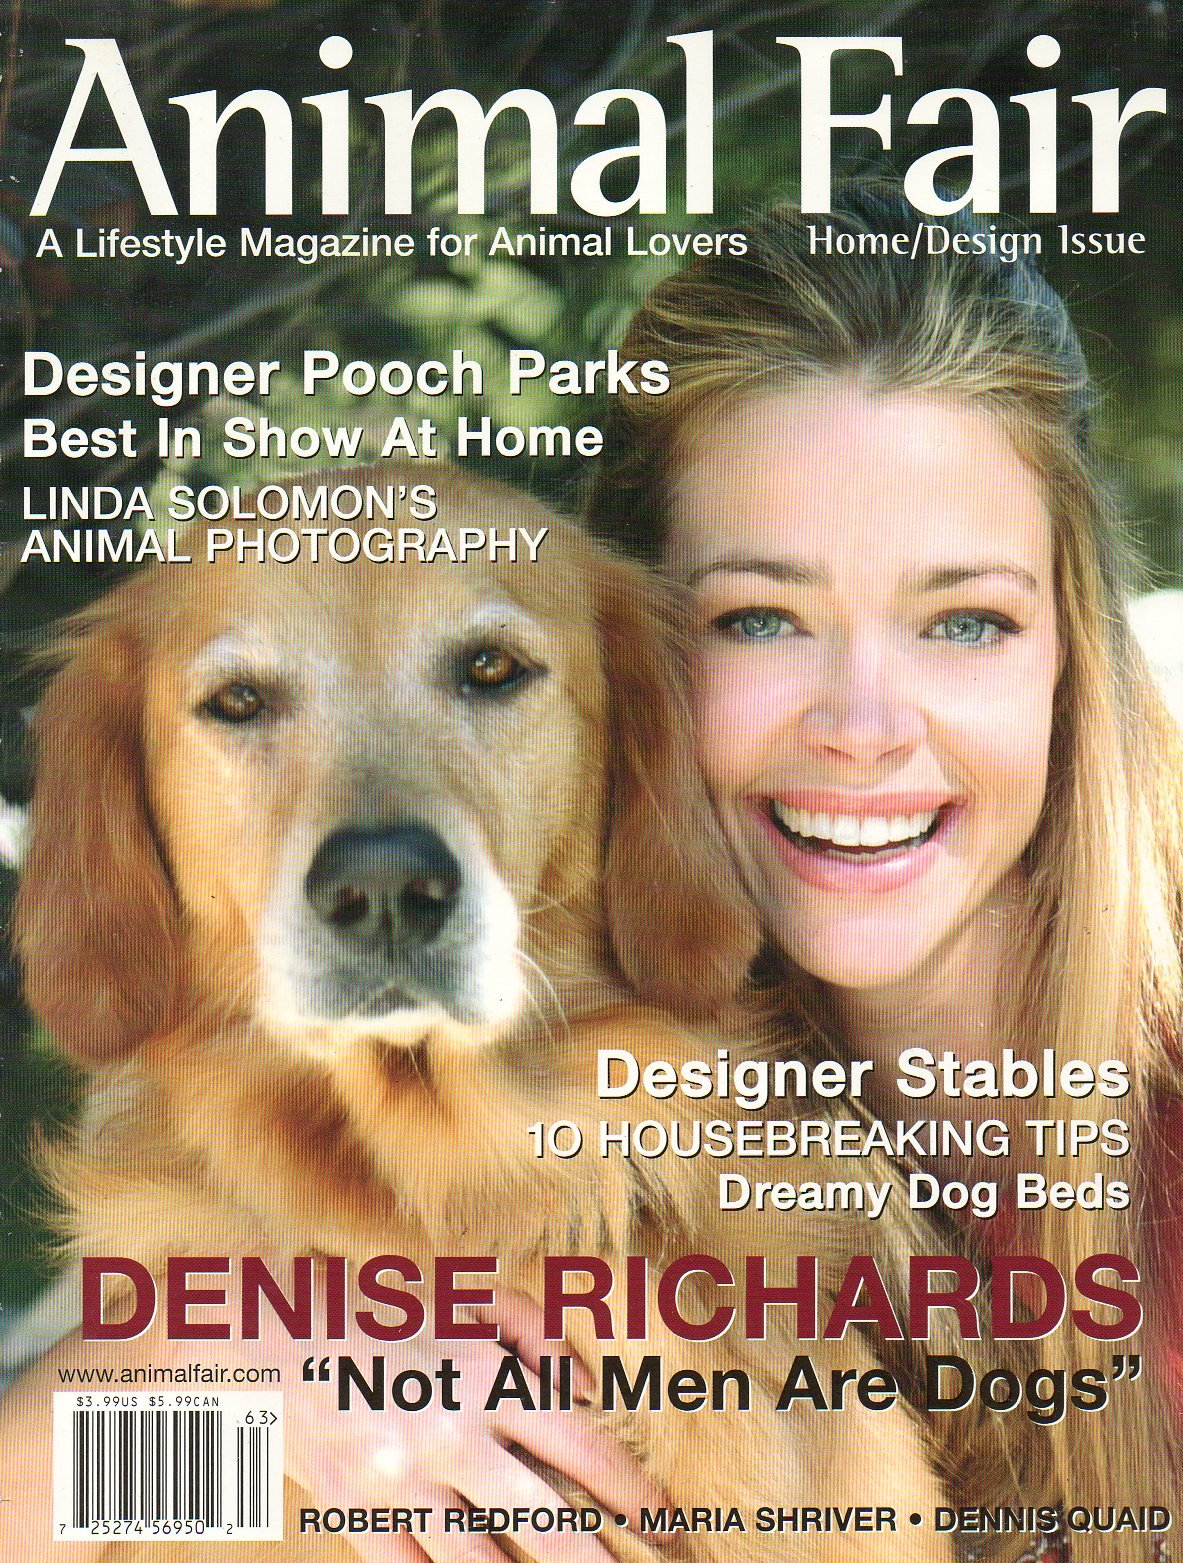 Animal Fair Magazine Home/Design Issue DENISE RICHARDS Linda Solomon's Animal Photography Illustrated DESIGNER POOCH PARKS Steve Irwin Tribute ROBERT REDFORD Maria Shriver DENNIS QUAID ebook